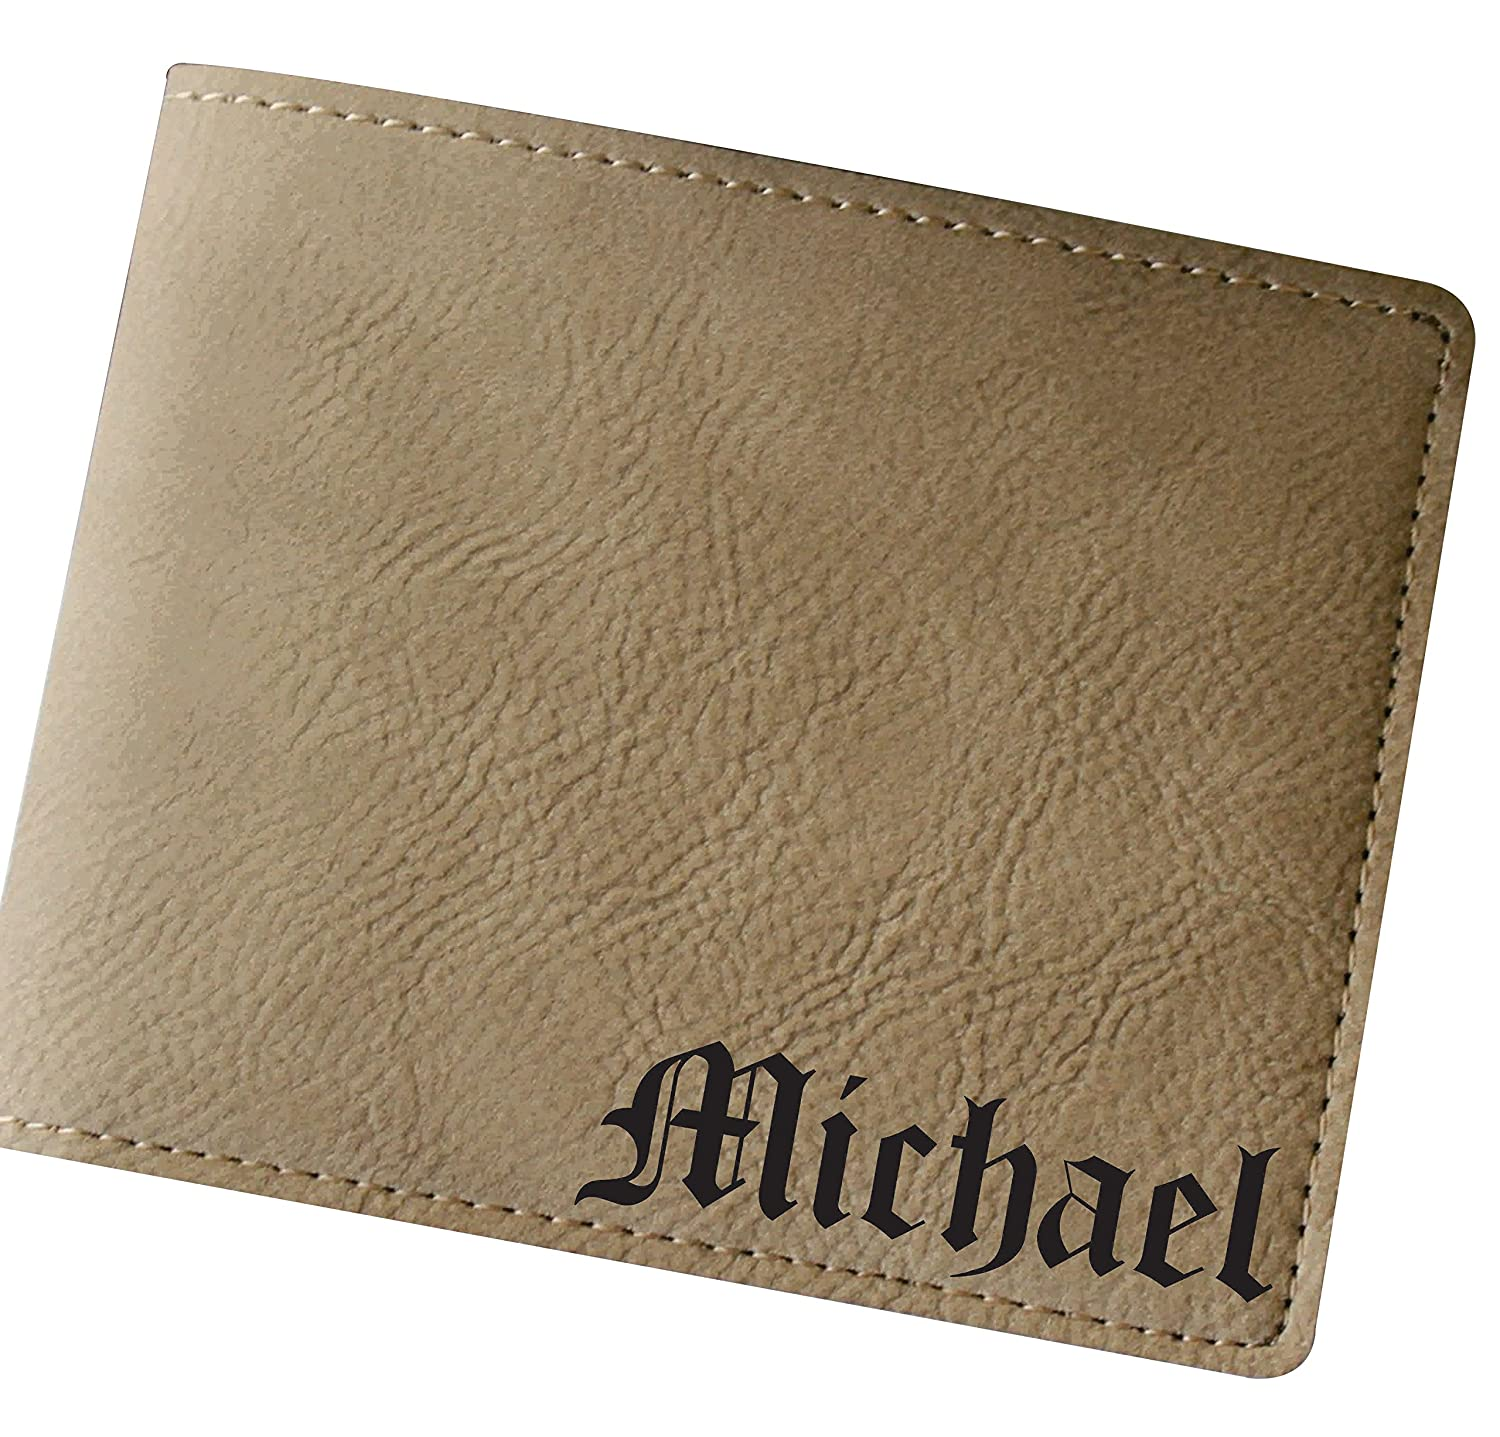 Customized Tan Leather Bi-Fold Men's Leather Wallet